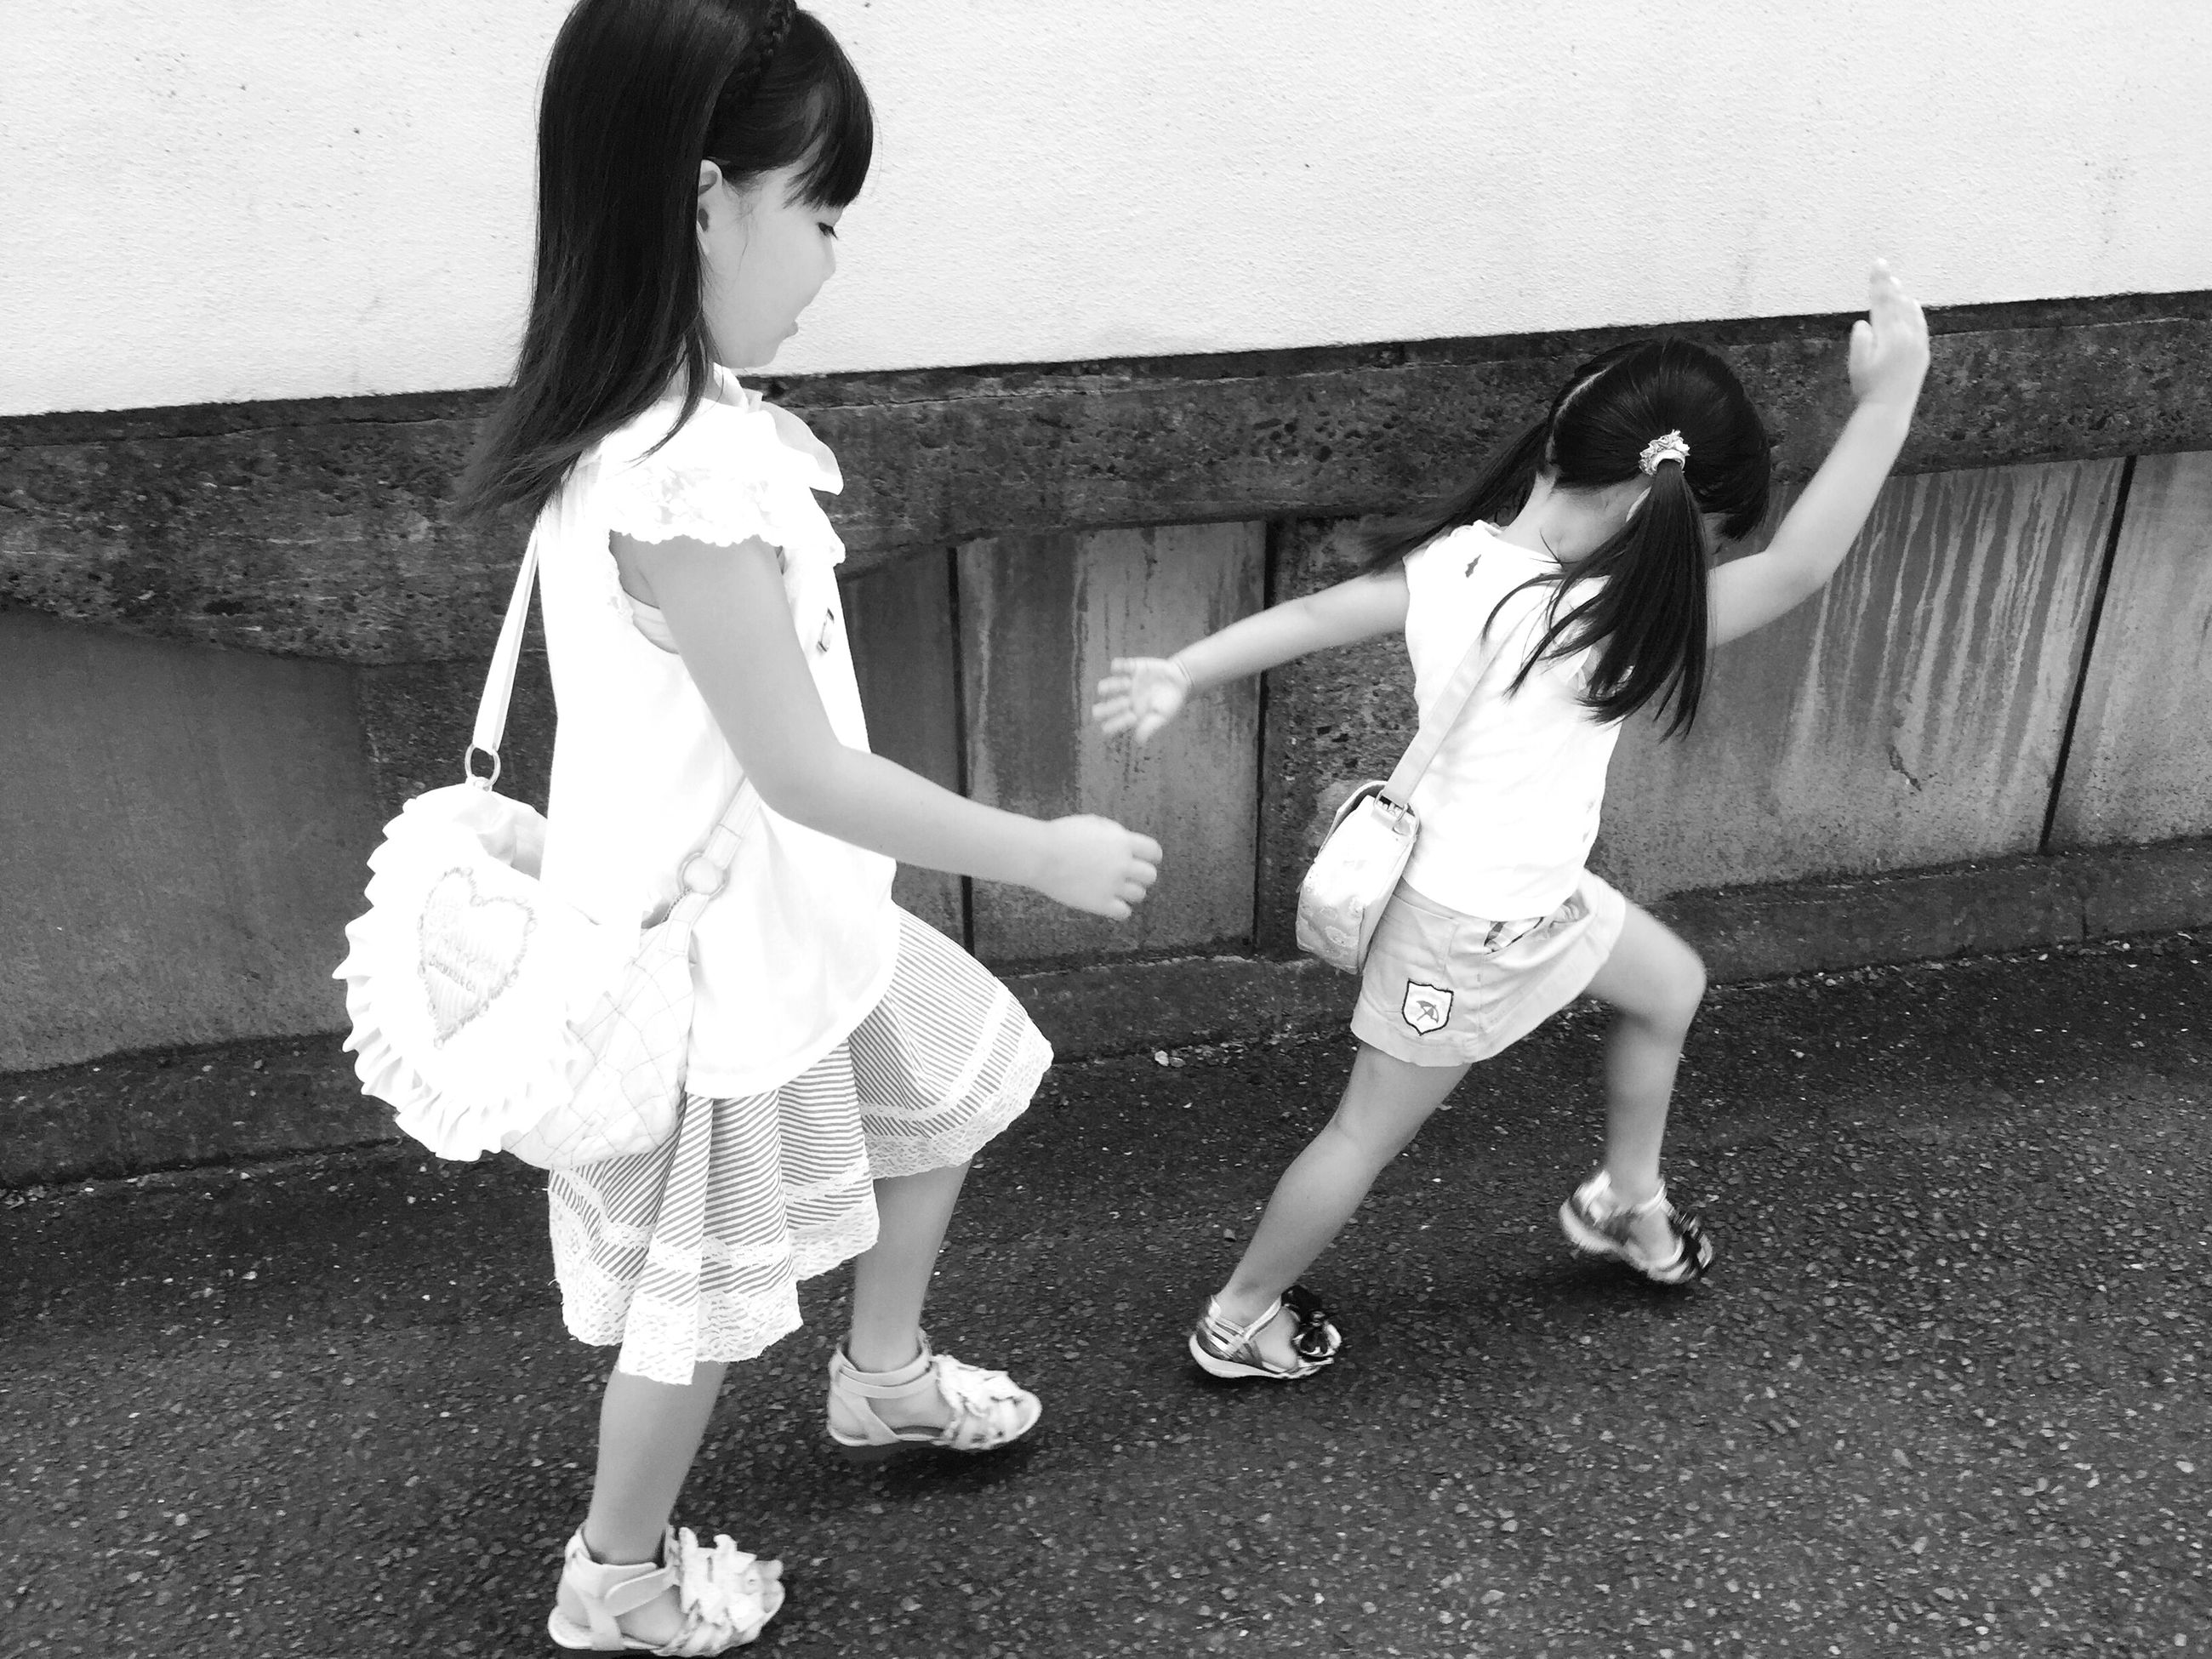 childhood, full length, elementary age, casual clothing, person, lifestyles, boys, girls, cute, leisure activity, innocence, holding, playing, standing, happiness, street, front view, playful